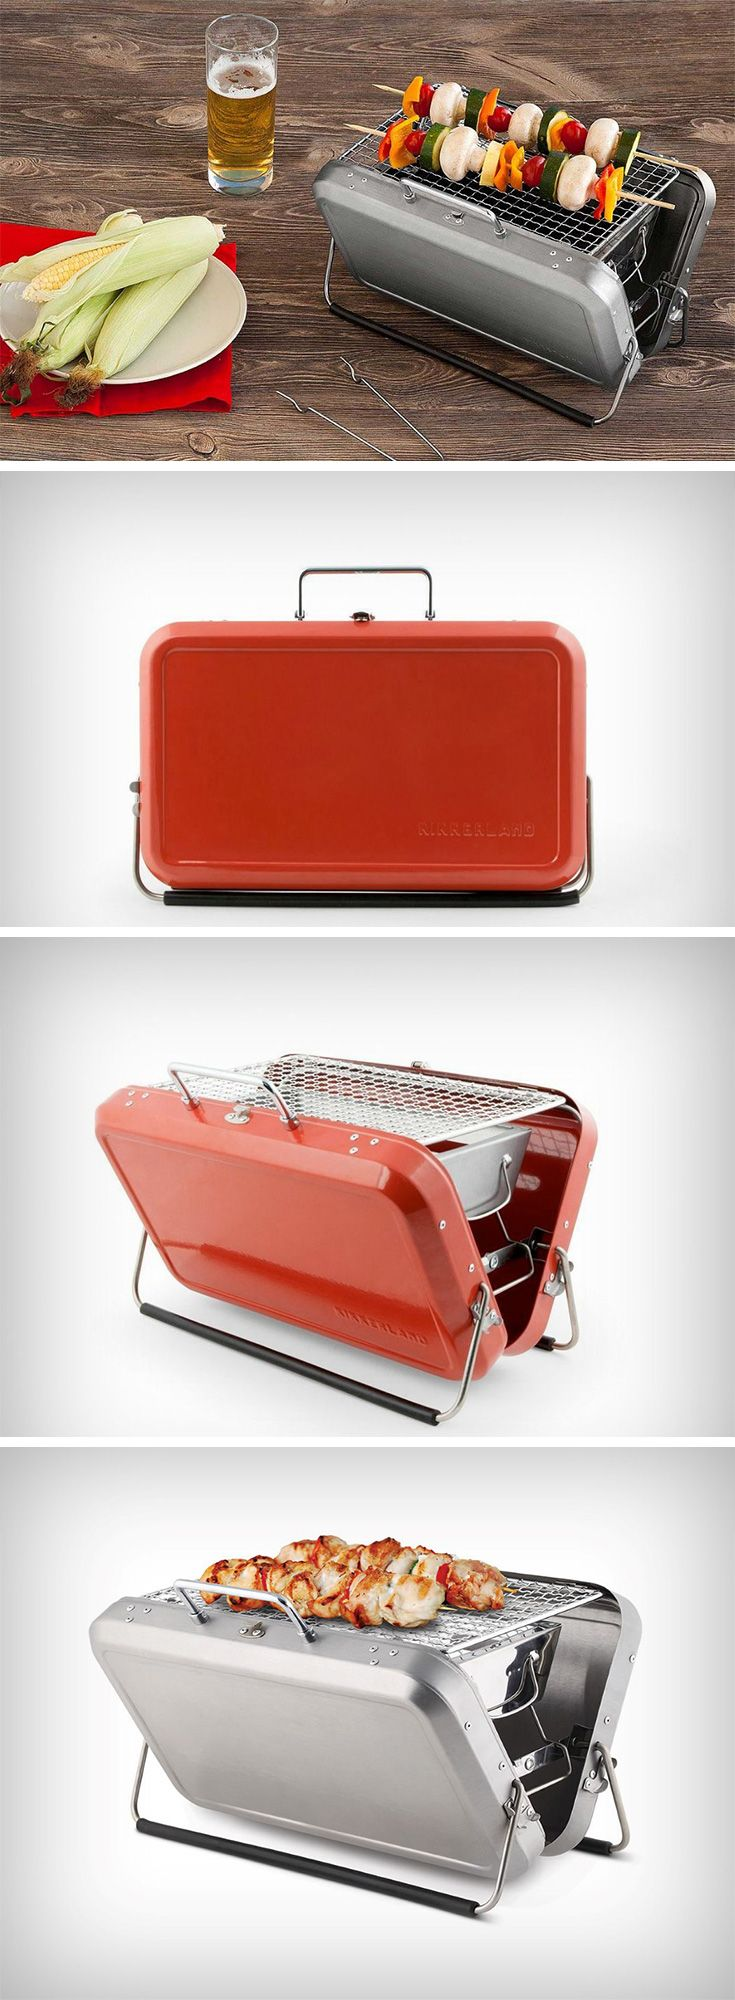 The BBQ Suitcase comes in stainless steel and opens up from a tiffin-box to a completely capable grill enough to barbecue food for two. Designed ultimately for convenience, the portable barbecue comes with a kickstand to give it stability, and even an ash catcher that allows the product to stay mess-free. BUY NOW!